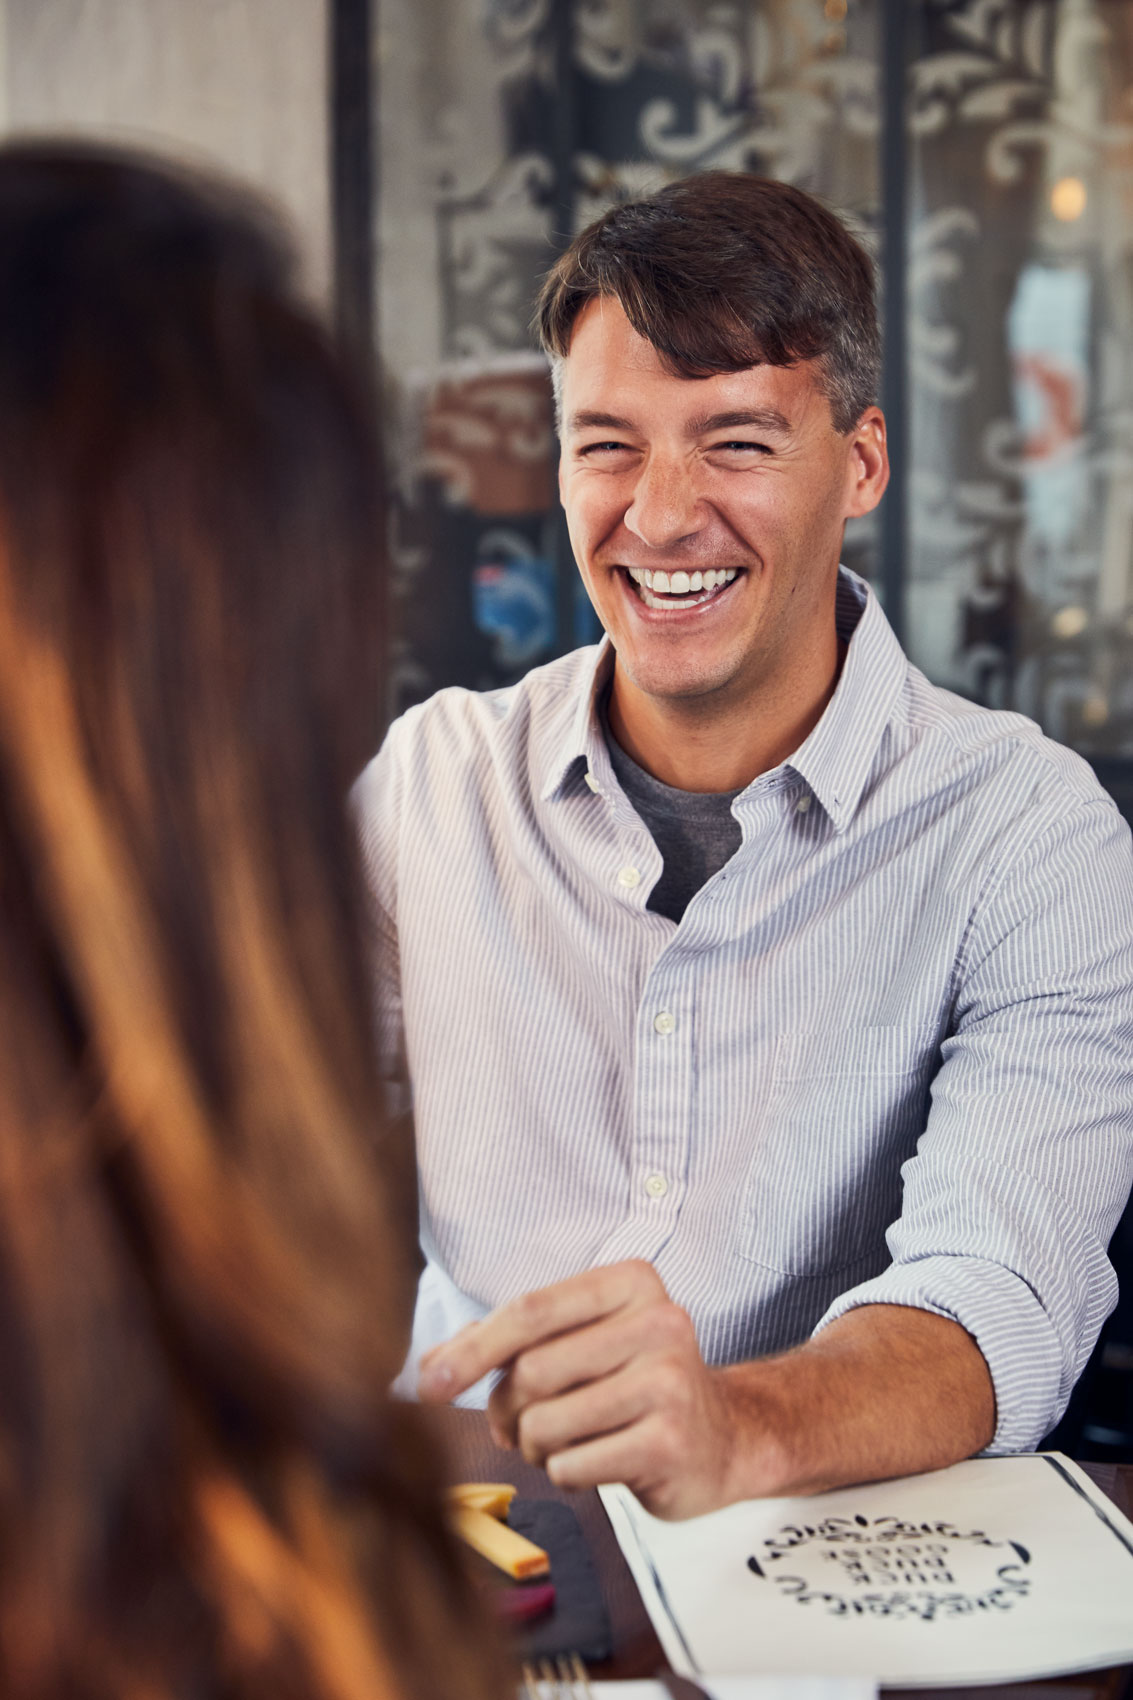 man laughing on date at restaurant, washington dc commercial photography